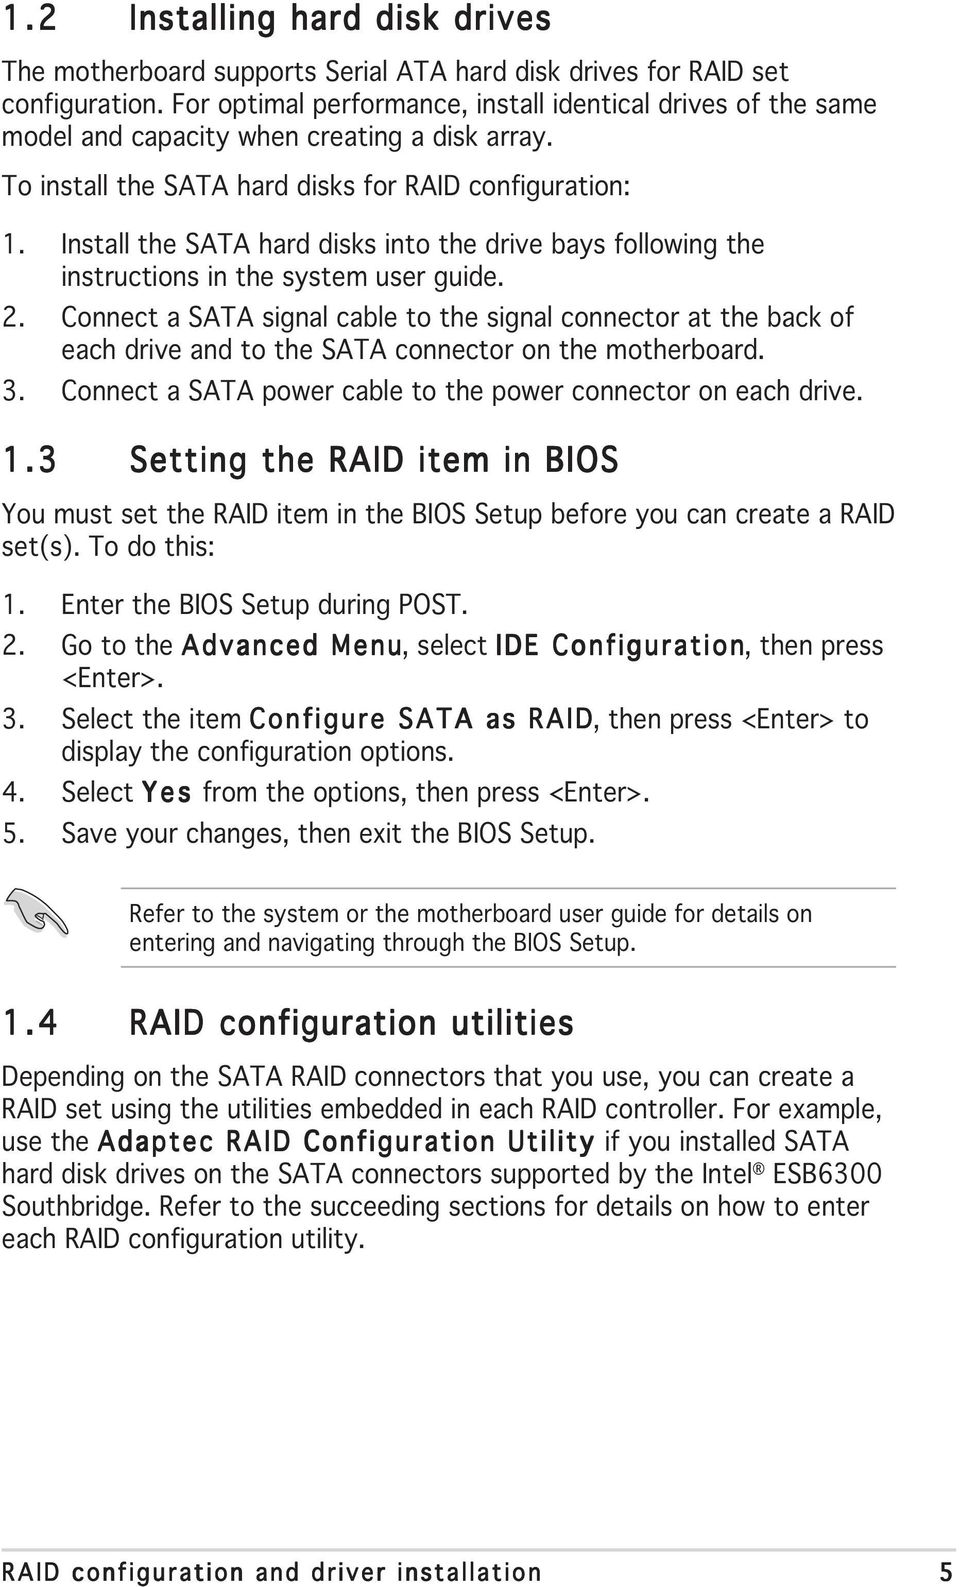 Install the SATA hard disks into the drive bays following the instructions in the system user guide. 2.